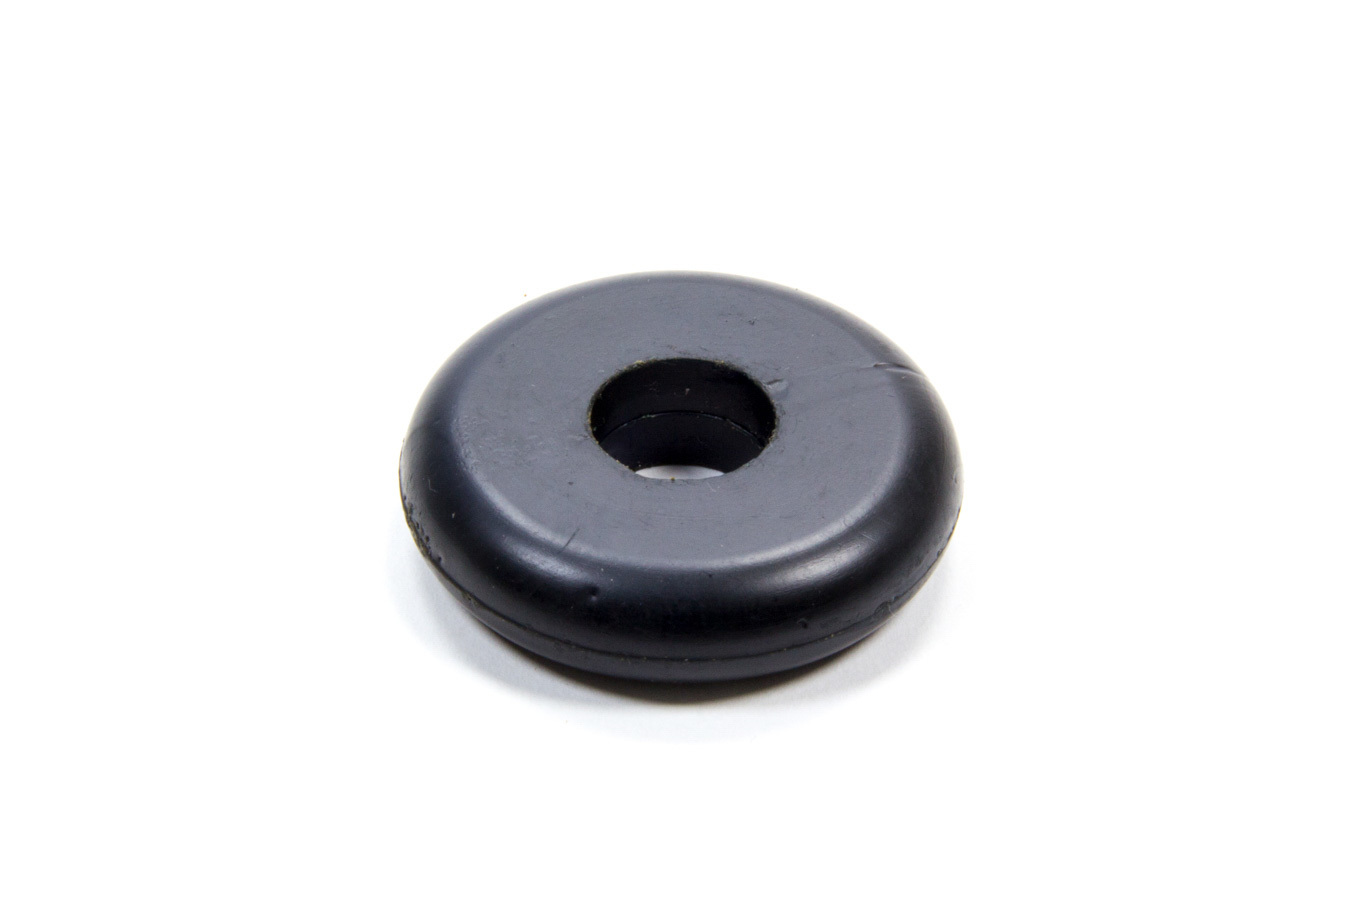 RE Suspension RE-BR-RSW-590 Bump Stop Puck, 2 in OD, 5/8 in ID, 1/2 in Tall, 90 Durometer, Polyurethane, Blue, Each